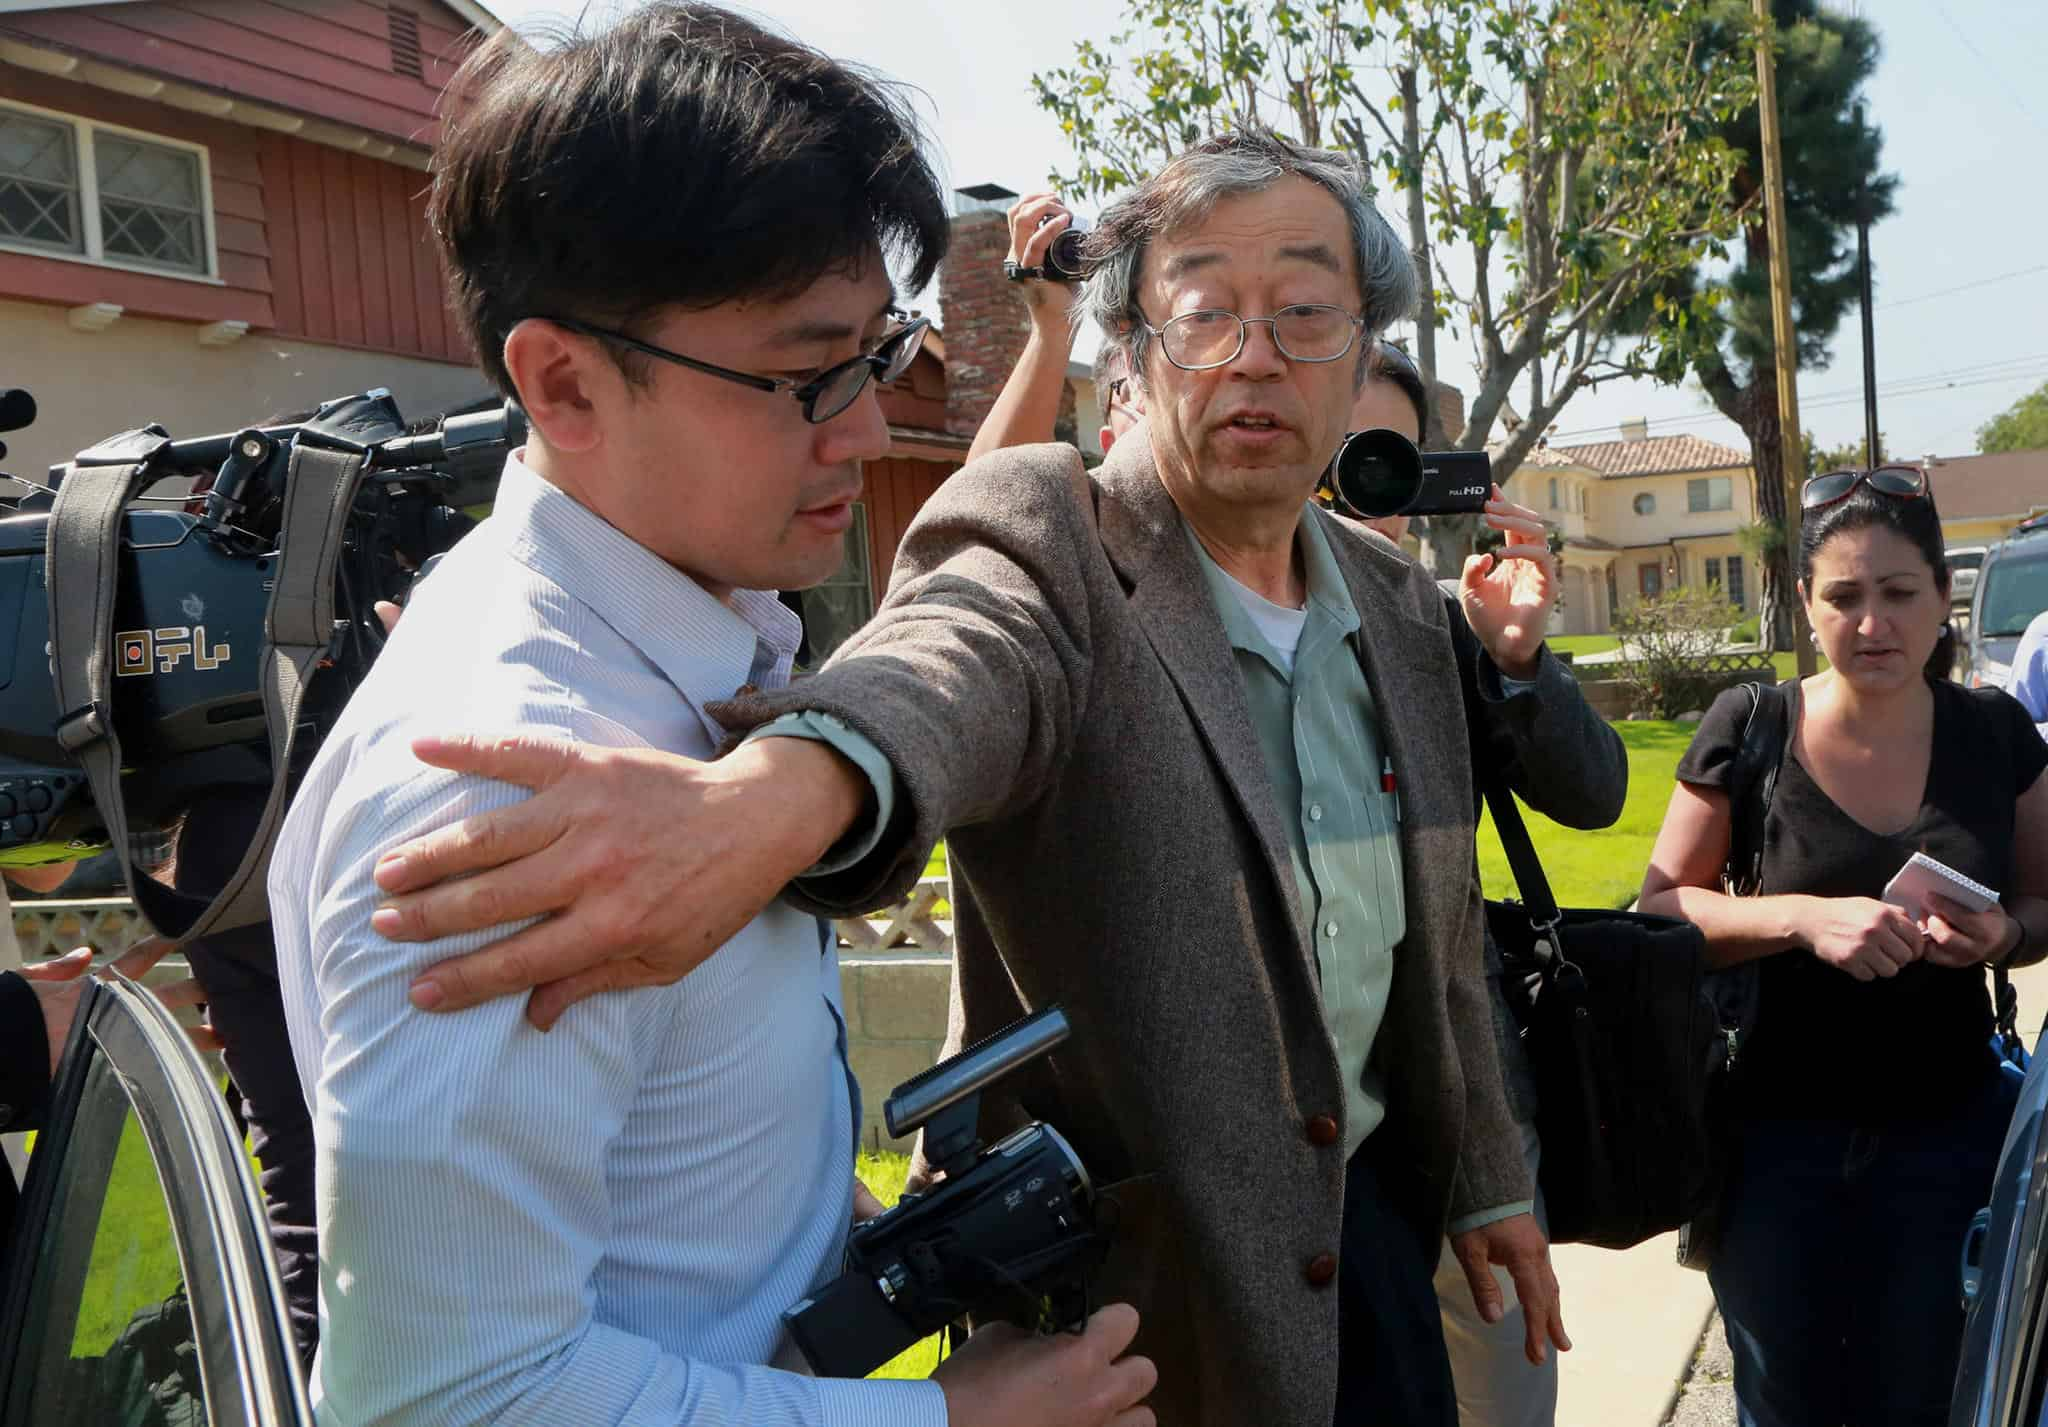 Dorian Nakamoto harassed by the press on his doorstep